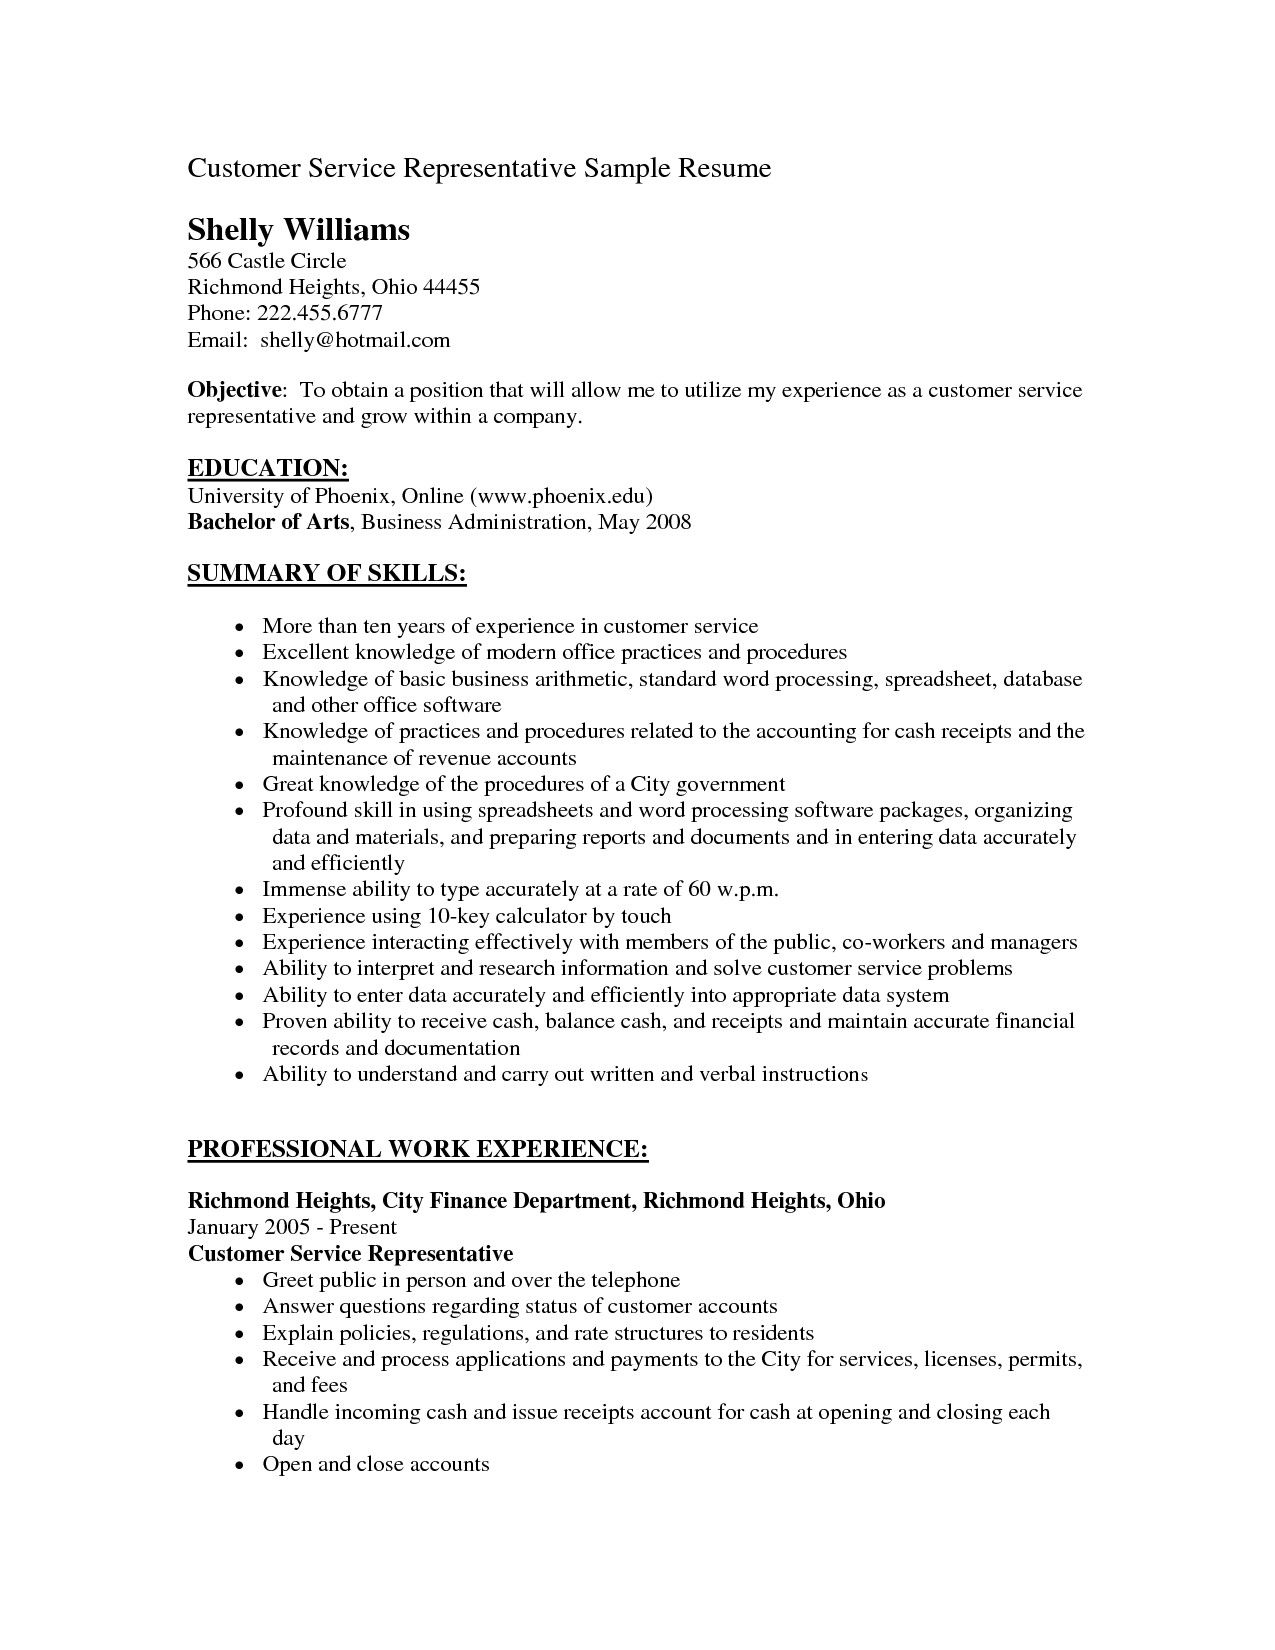 hiring manager resume sample new customer service objectives of special objective Resume Objective Examples For Customer Service Resume